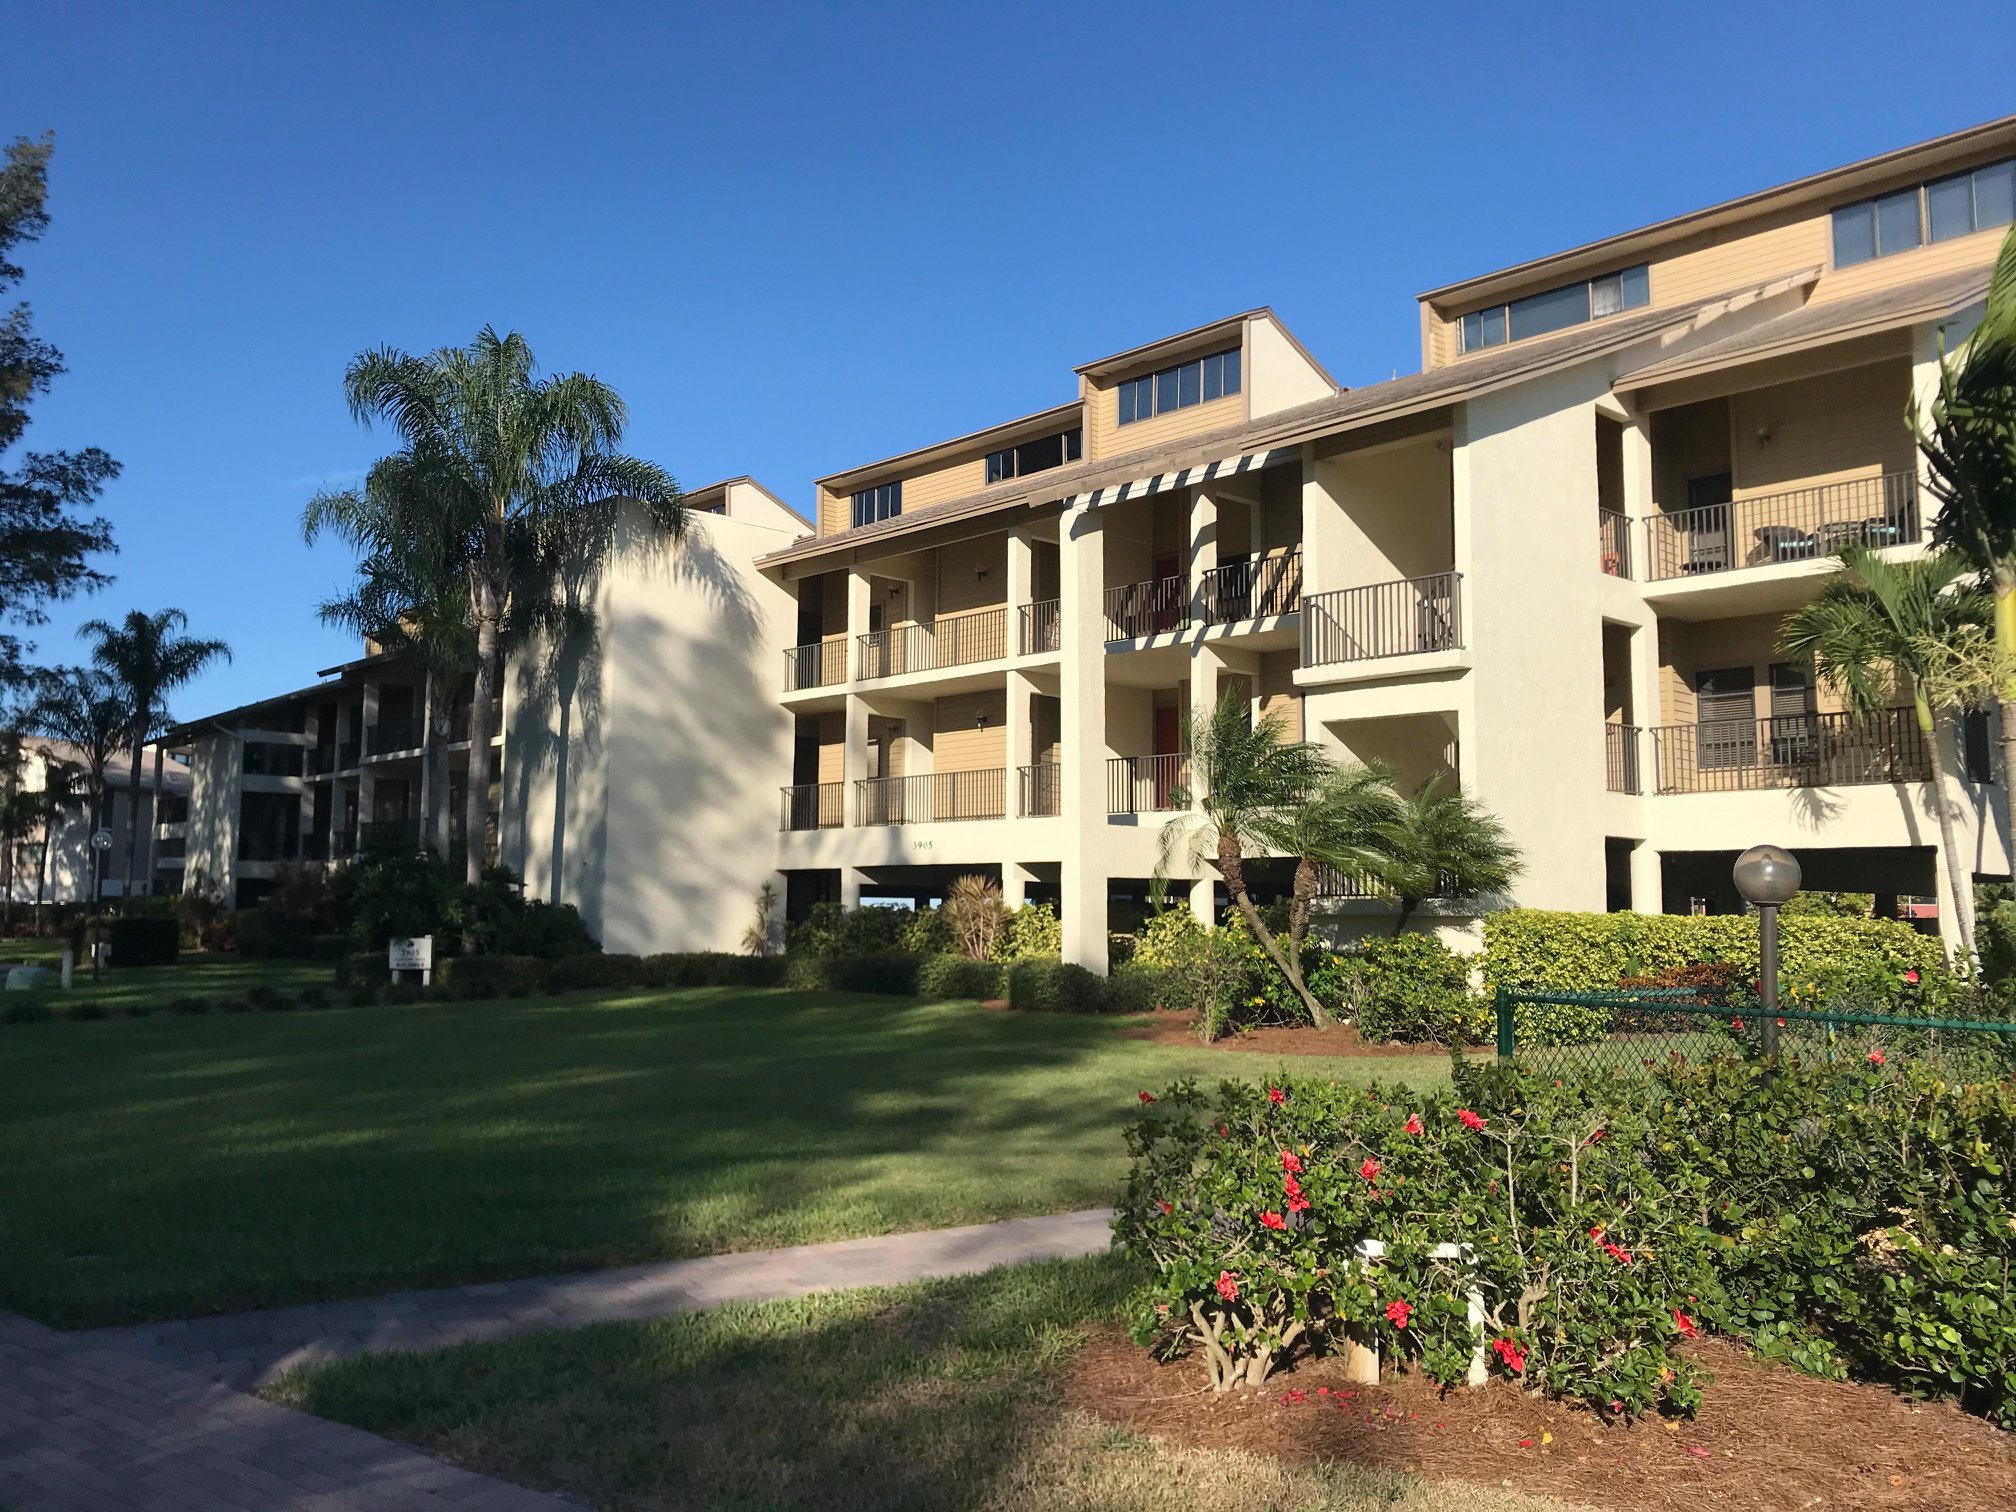 Mariners Cove #824 by RVA Vacation Rentals